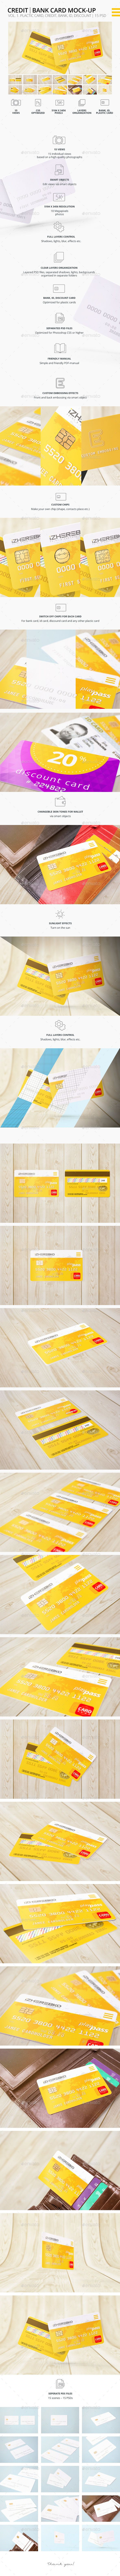 Credit Card | Bank Card | ID | Discount Mock-Up. Download here: http://graphicriver.net/item/credit-card-bank-card-id-discount-mockup/16889327?ref=ksioks